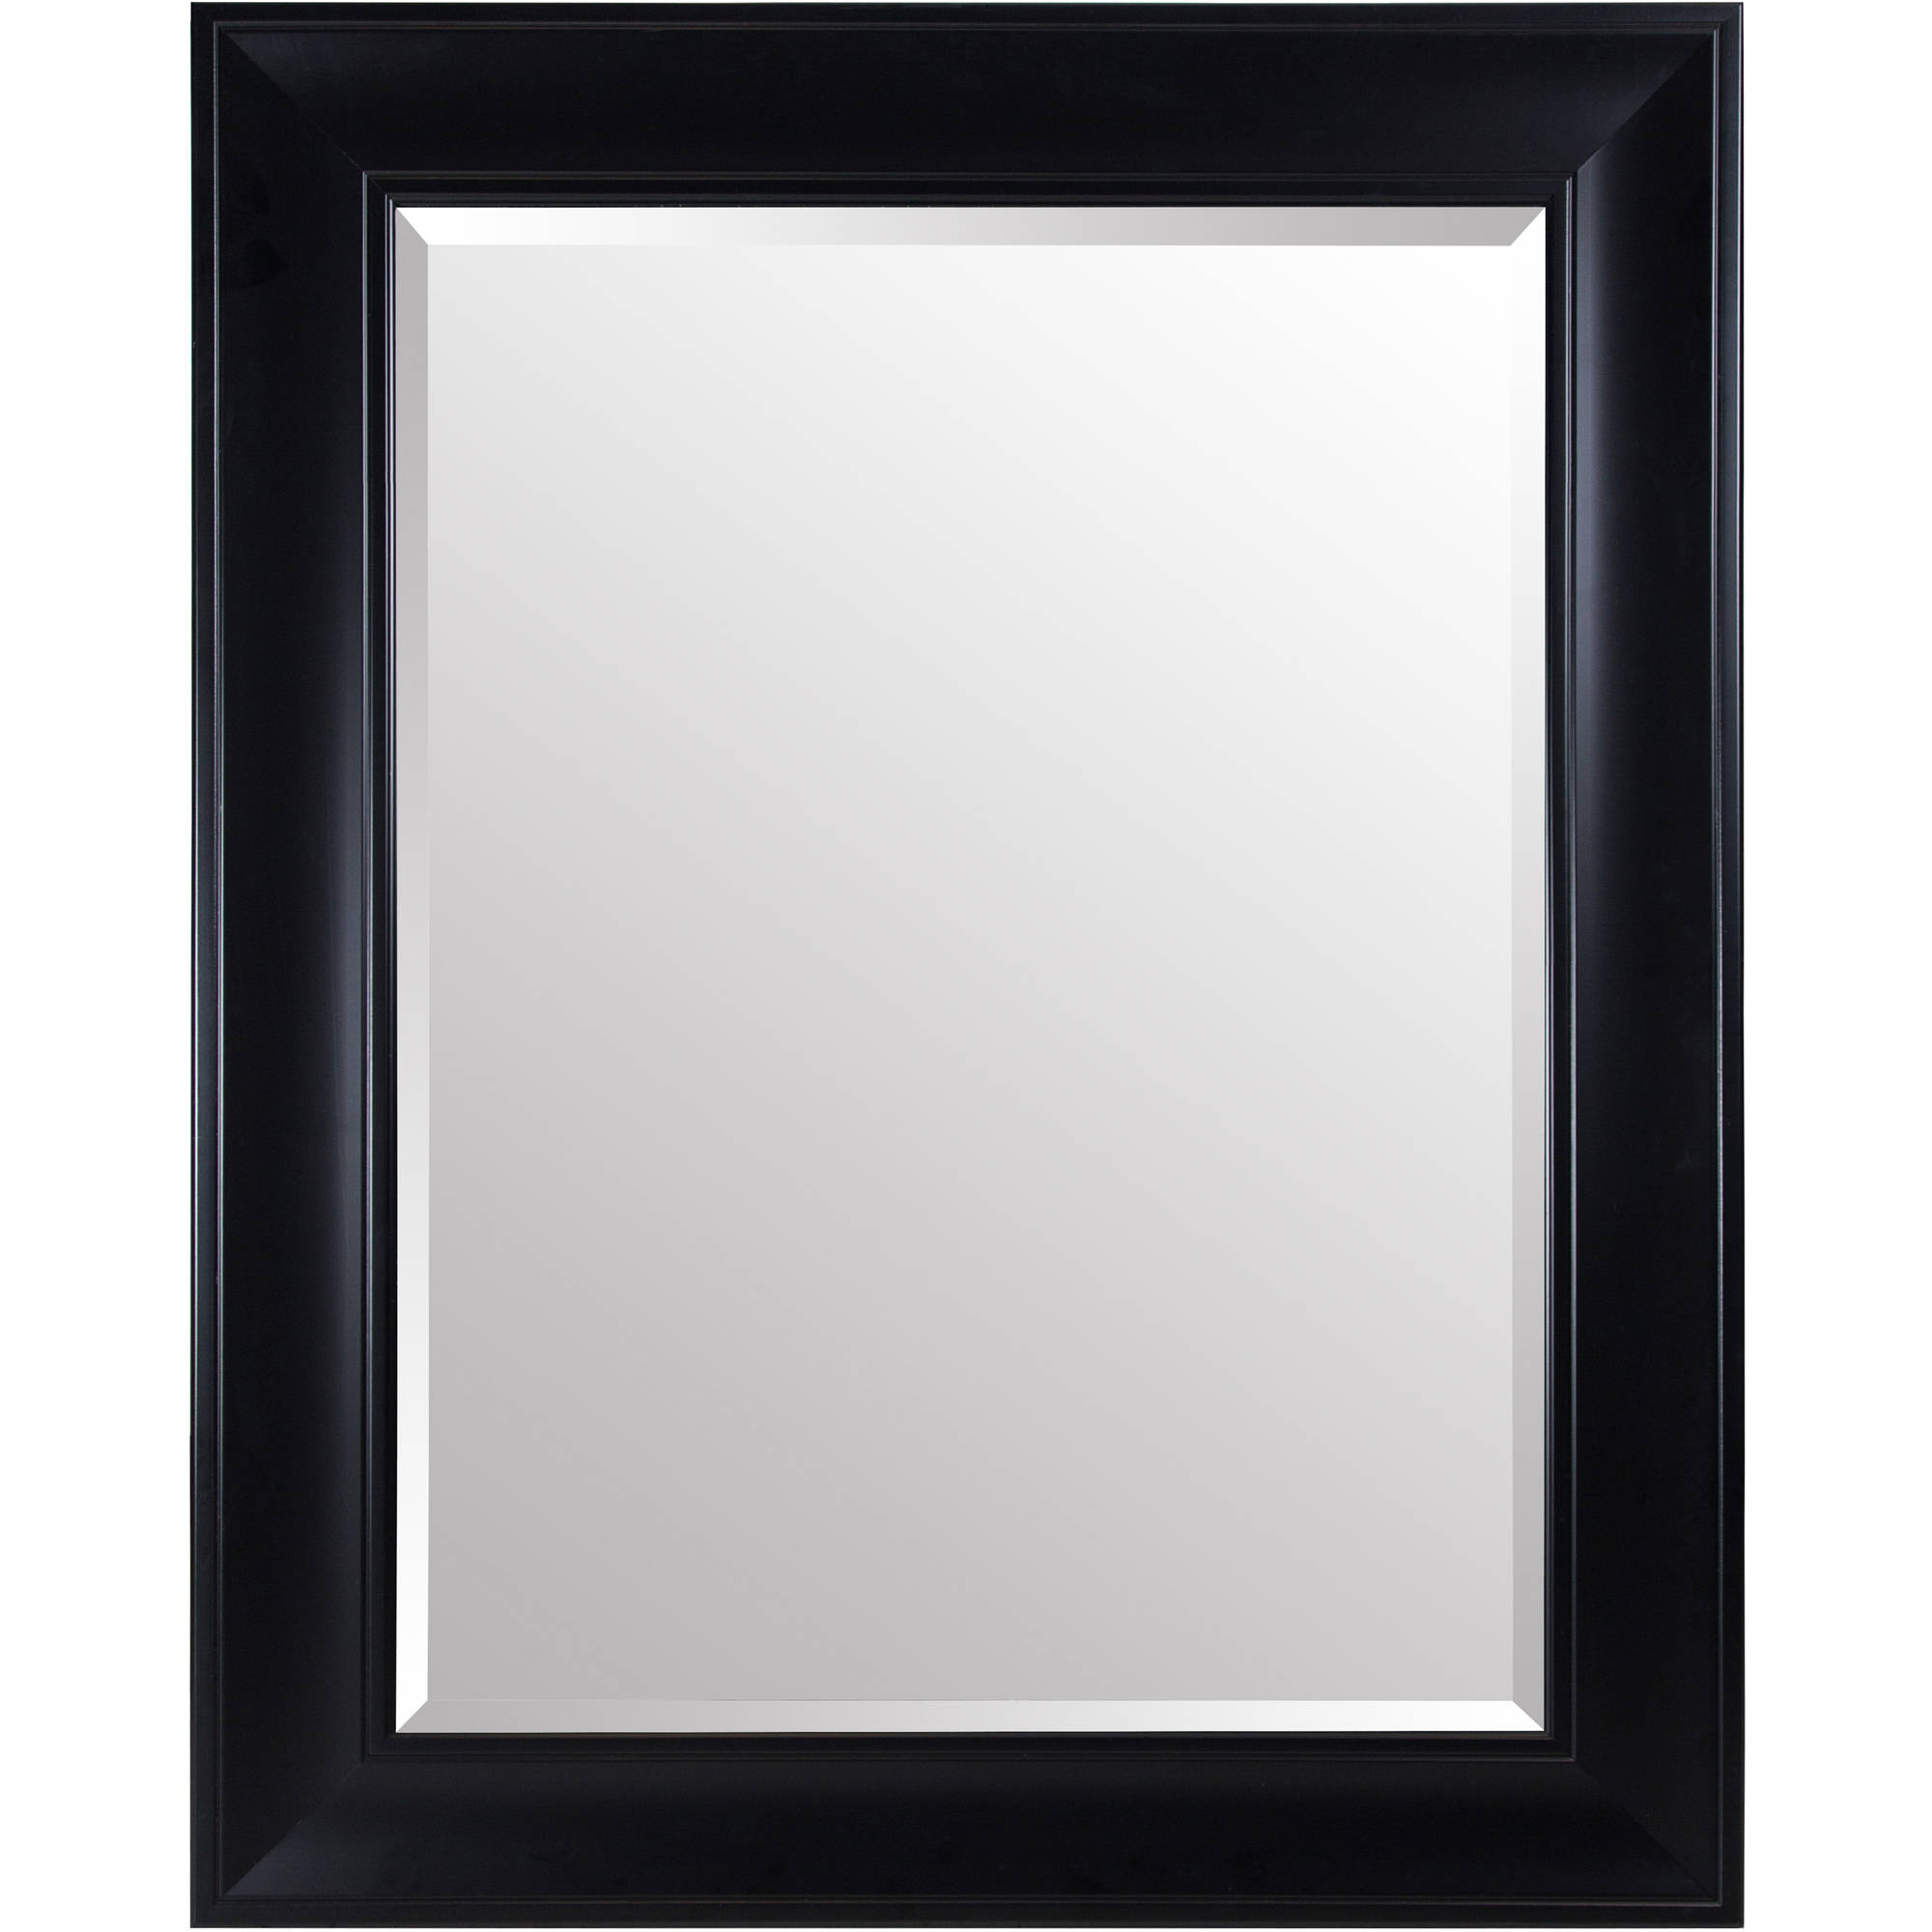 Large Beveled Wall Mirrors With Regard To Popular Gallery Solutions Large 39X49 Beveled Wall Mirror With Black Satin Frame (Gallery 14 of 20)